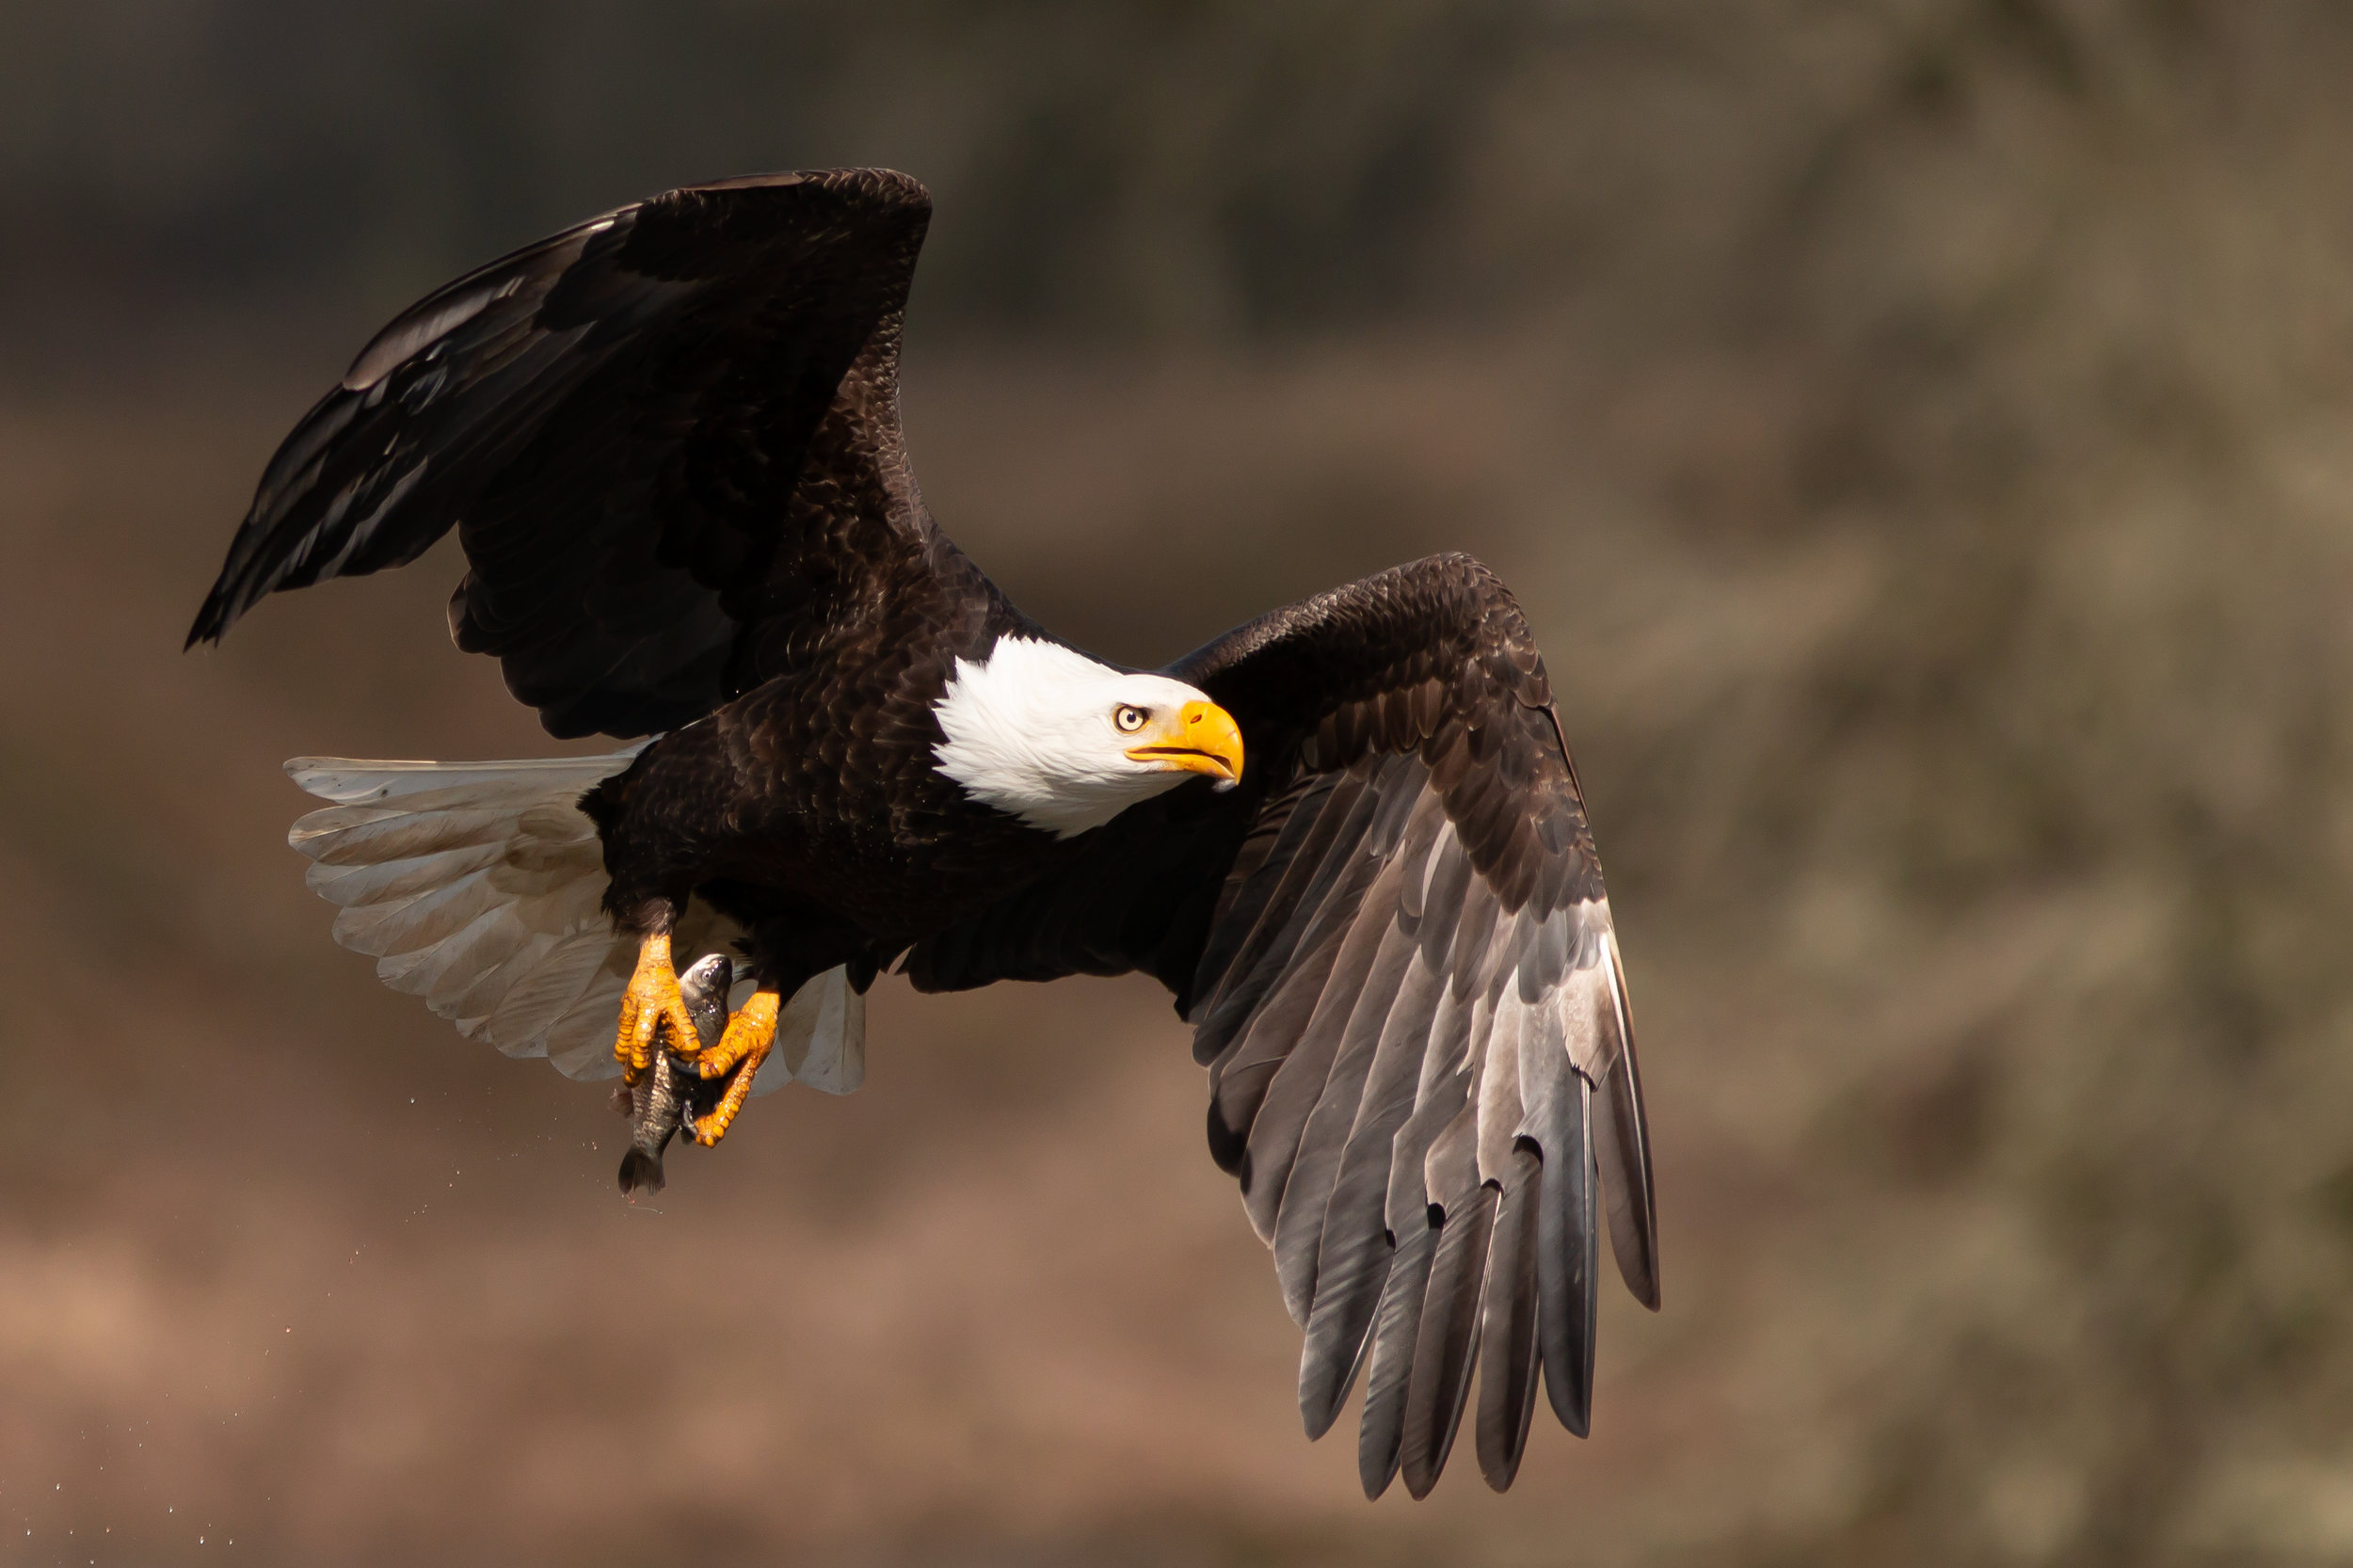 EAgle-with-Fish-for-Print-Saved-for-Web-dhe.jpg